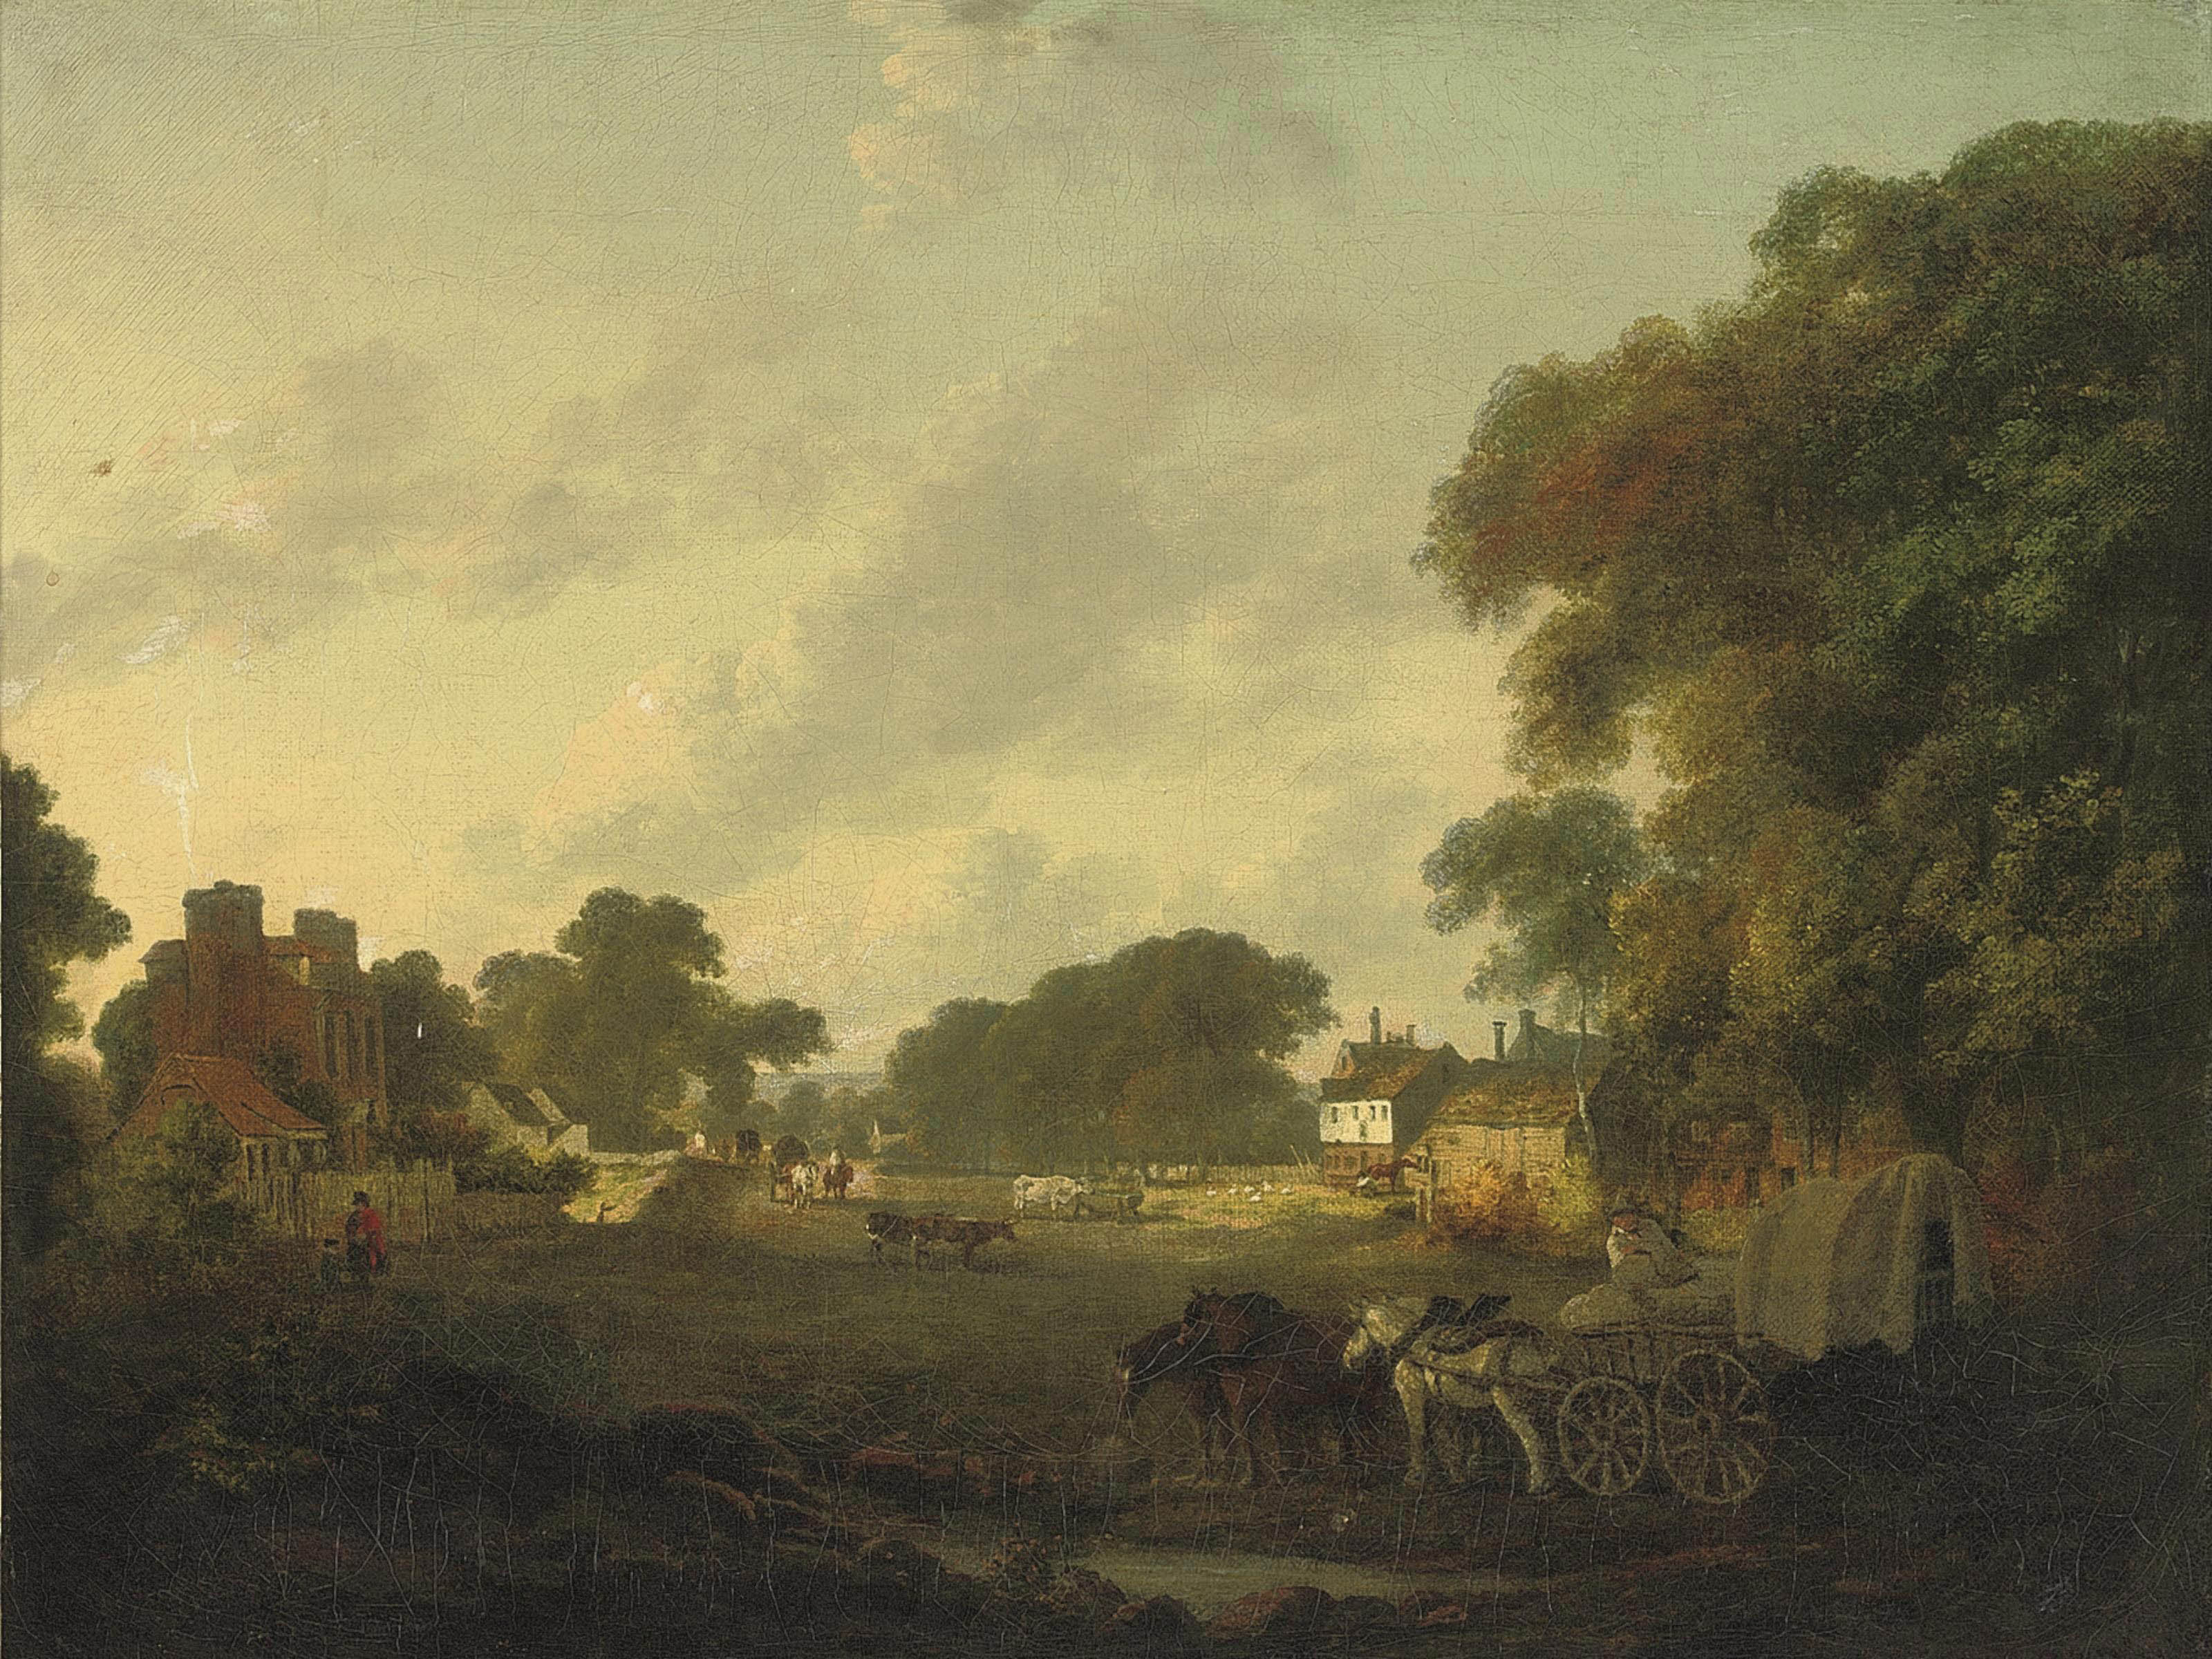 A rural landscape with villagers in horse-drawn carts and farm animals